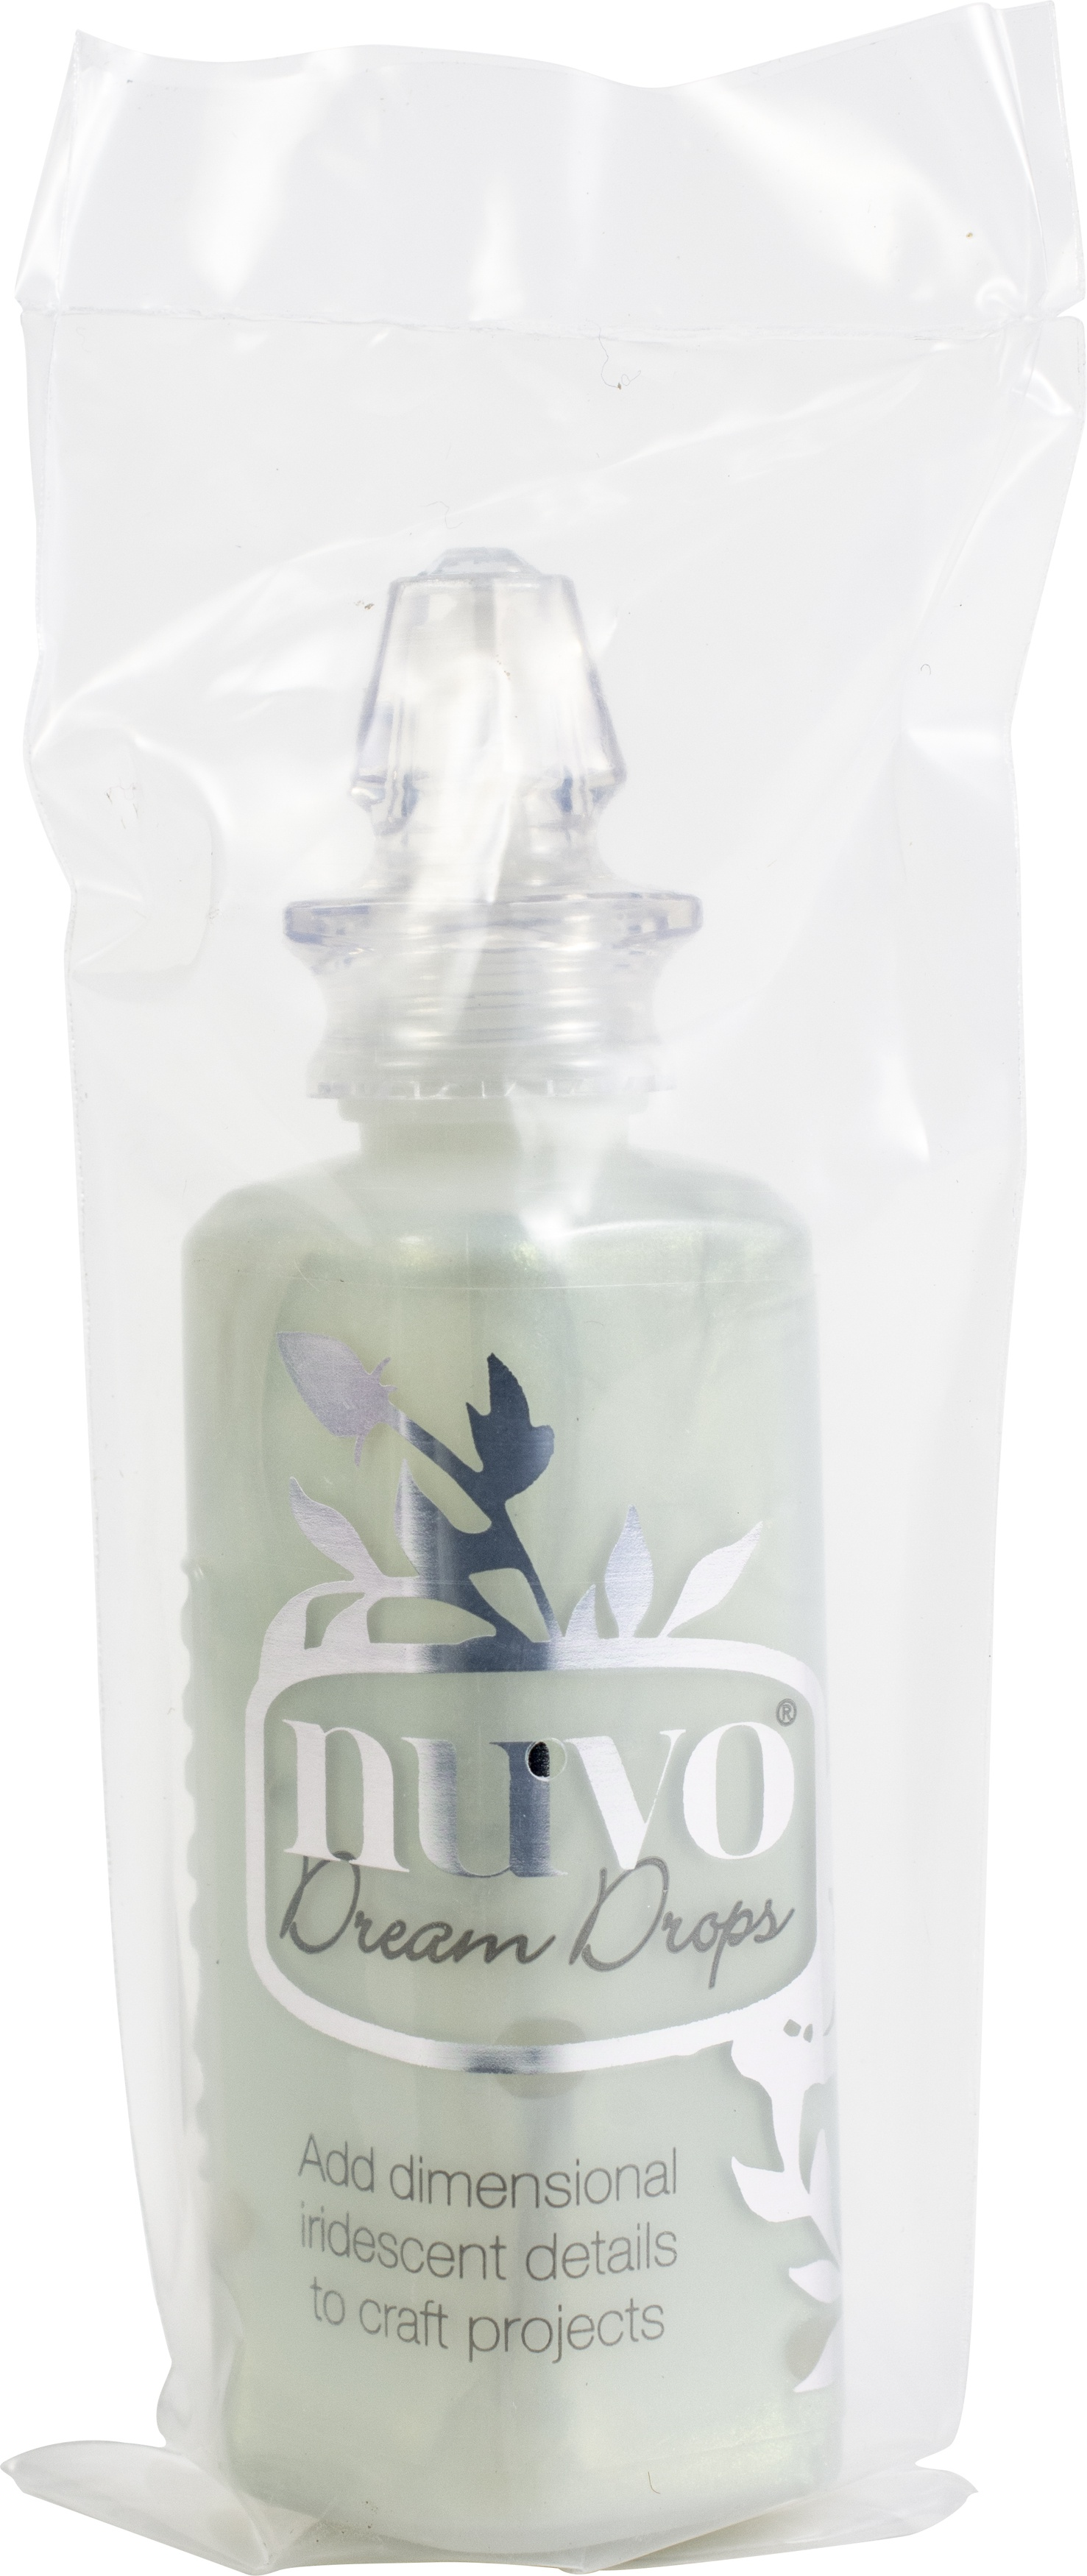 Nuvo Dream Drops 1.3oz - CLICK ON IMAGE for color options!